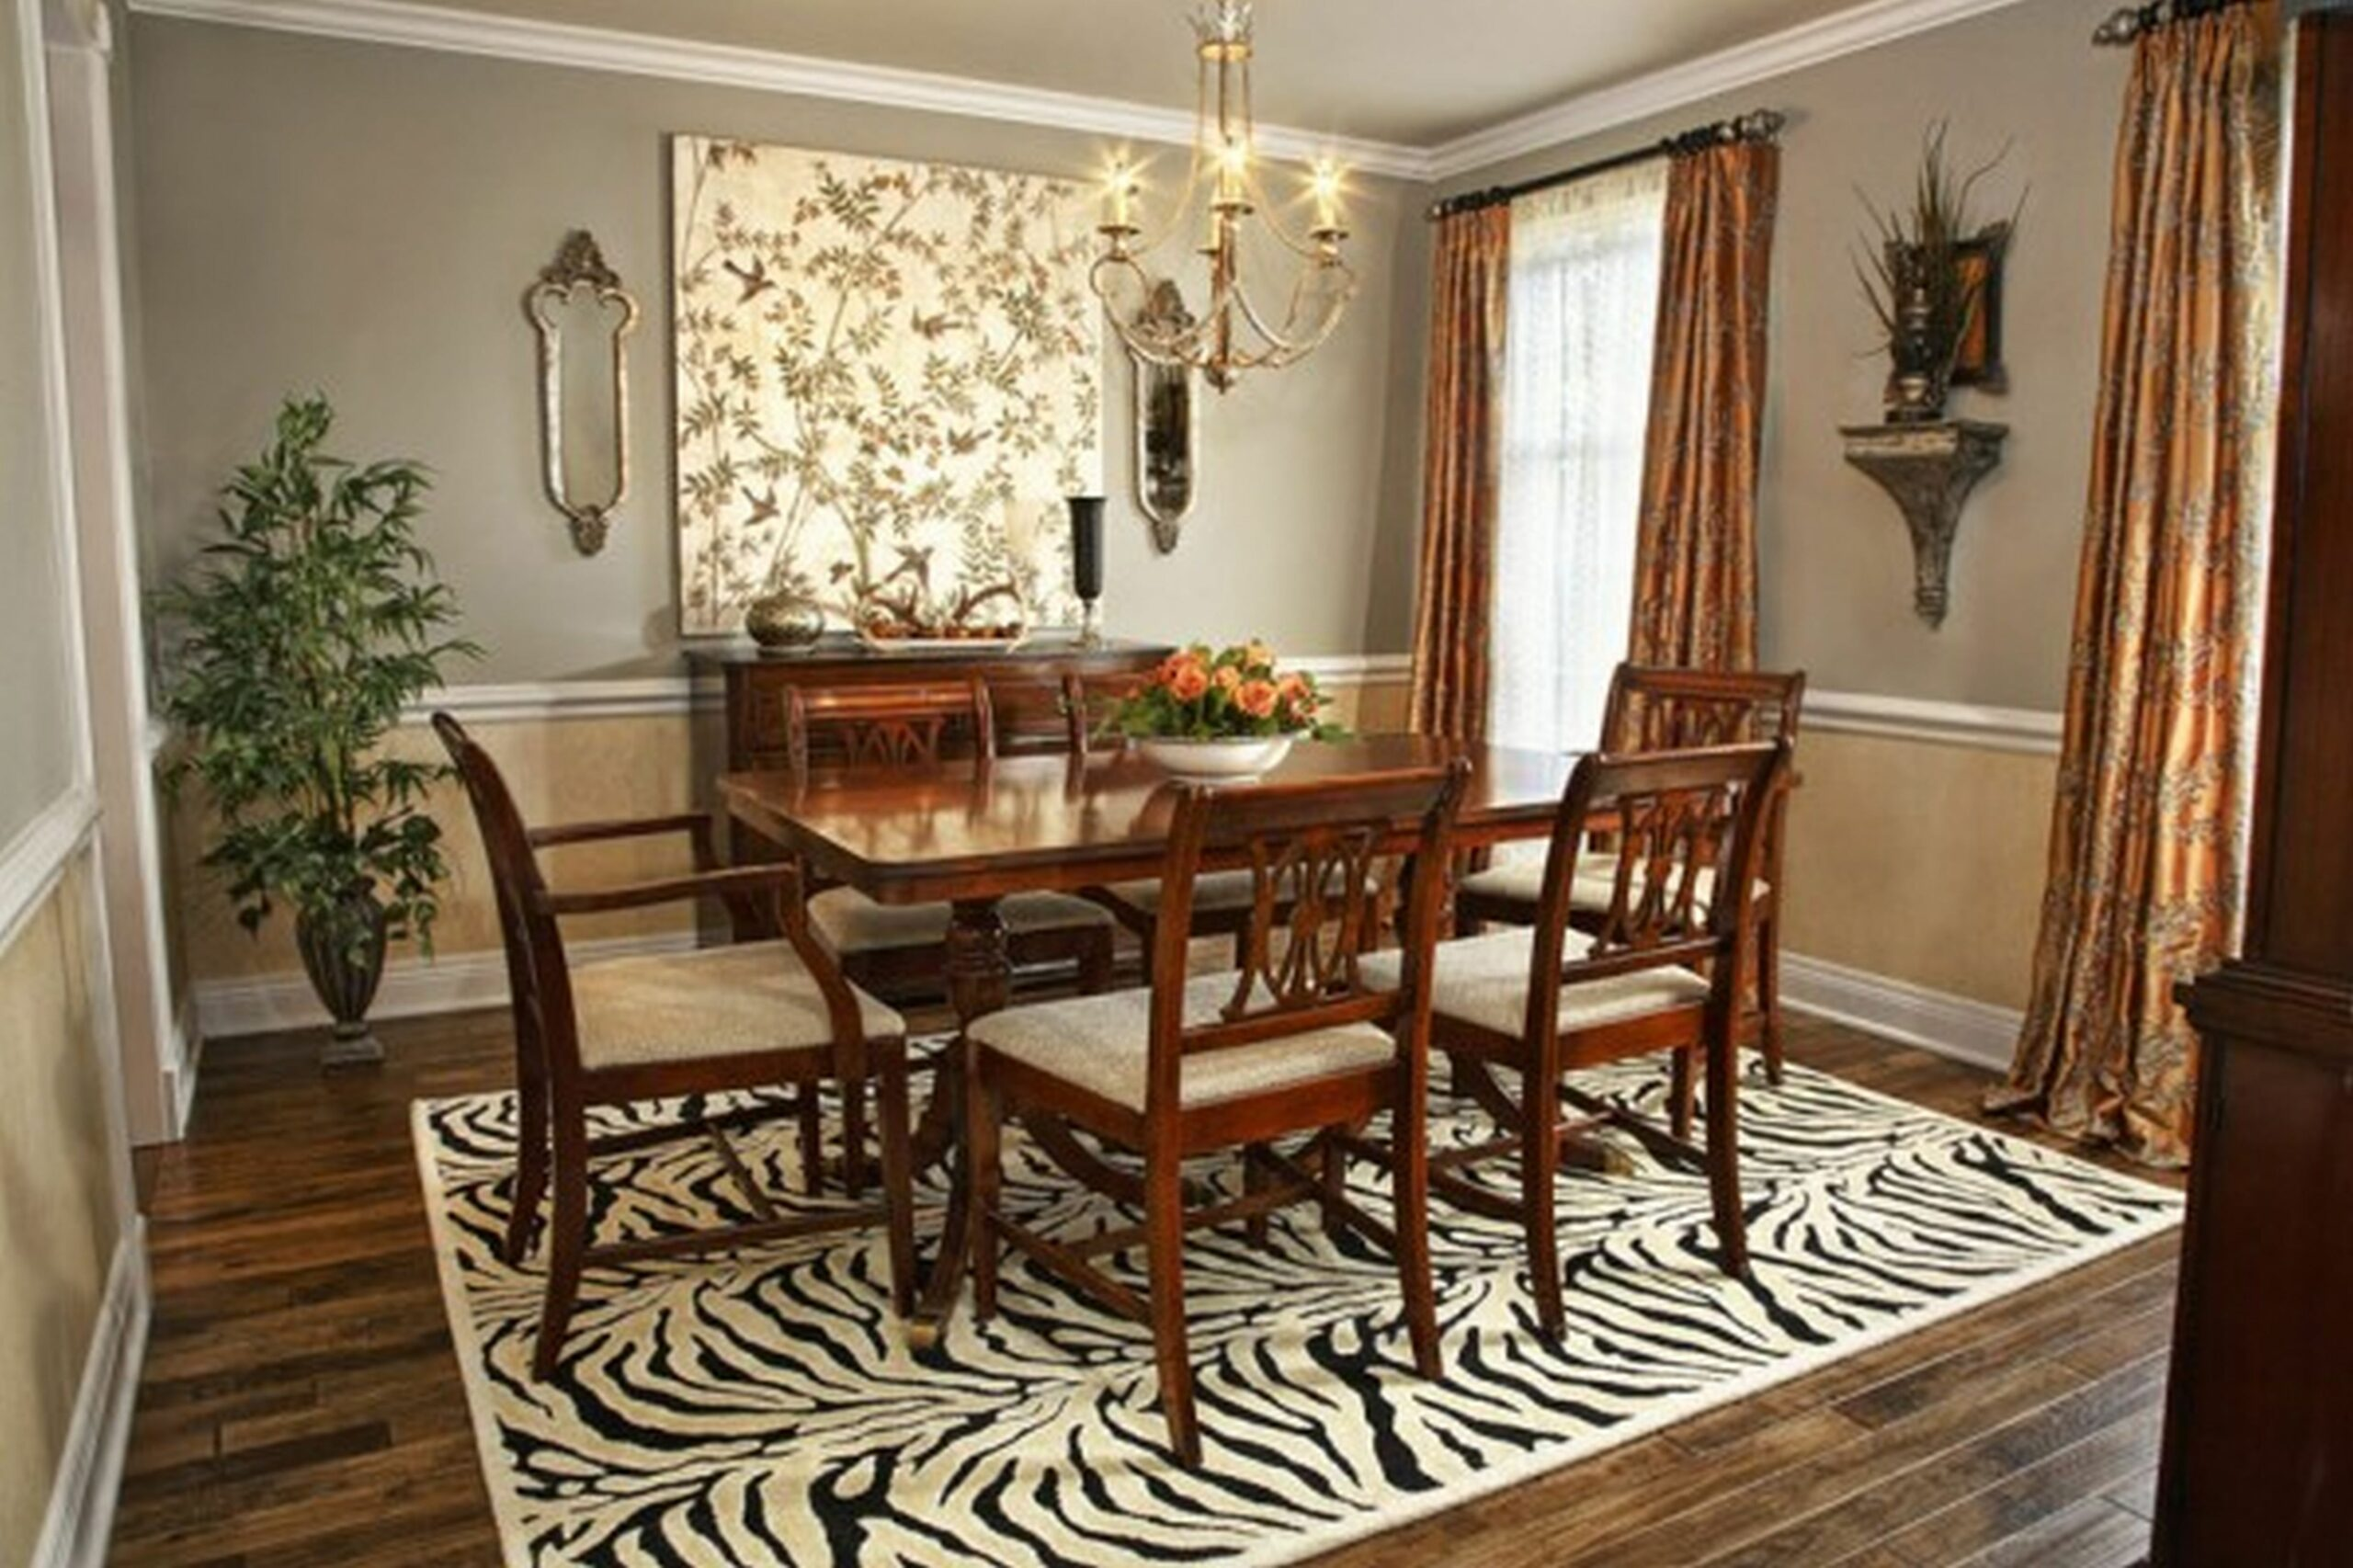 Dining Room Small Living Decorating Tricks Hgtv Simple House Ideas ..